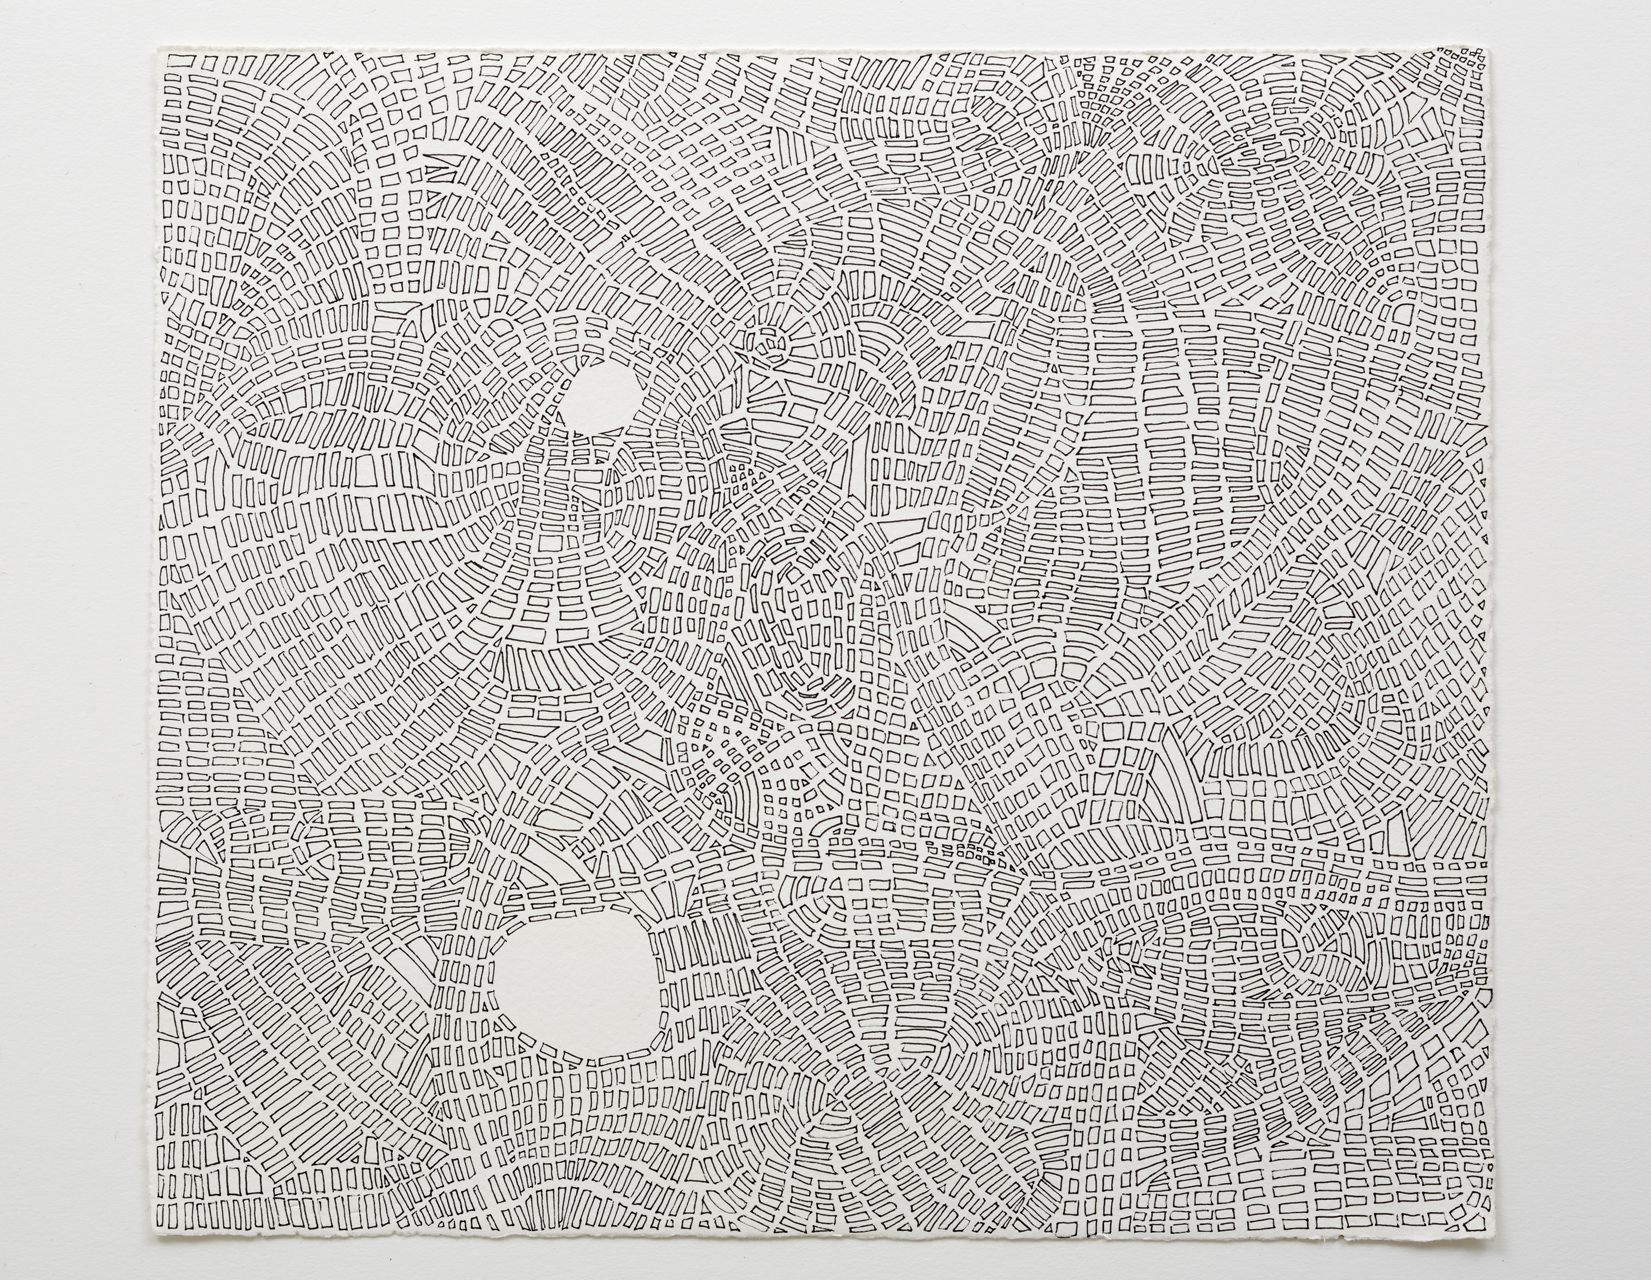 Untitled (Old City No. 1), 2012